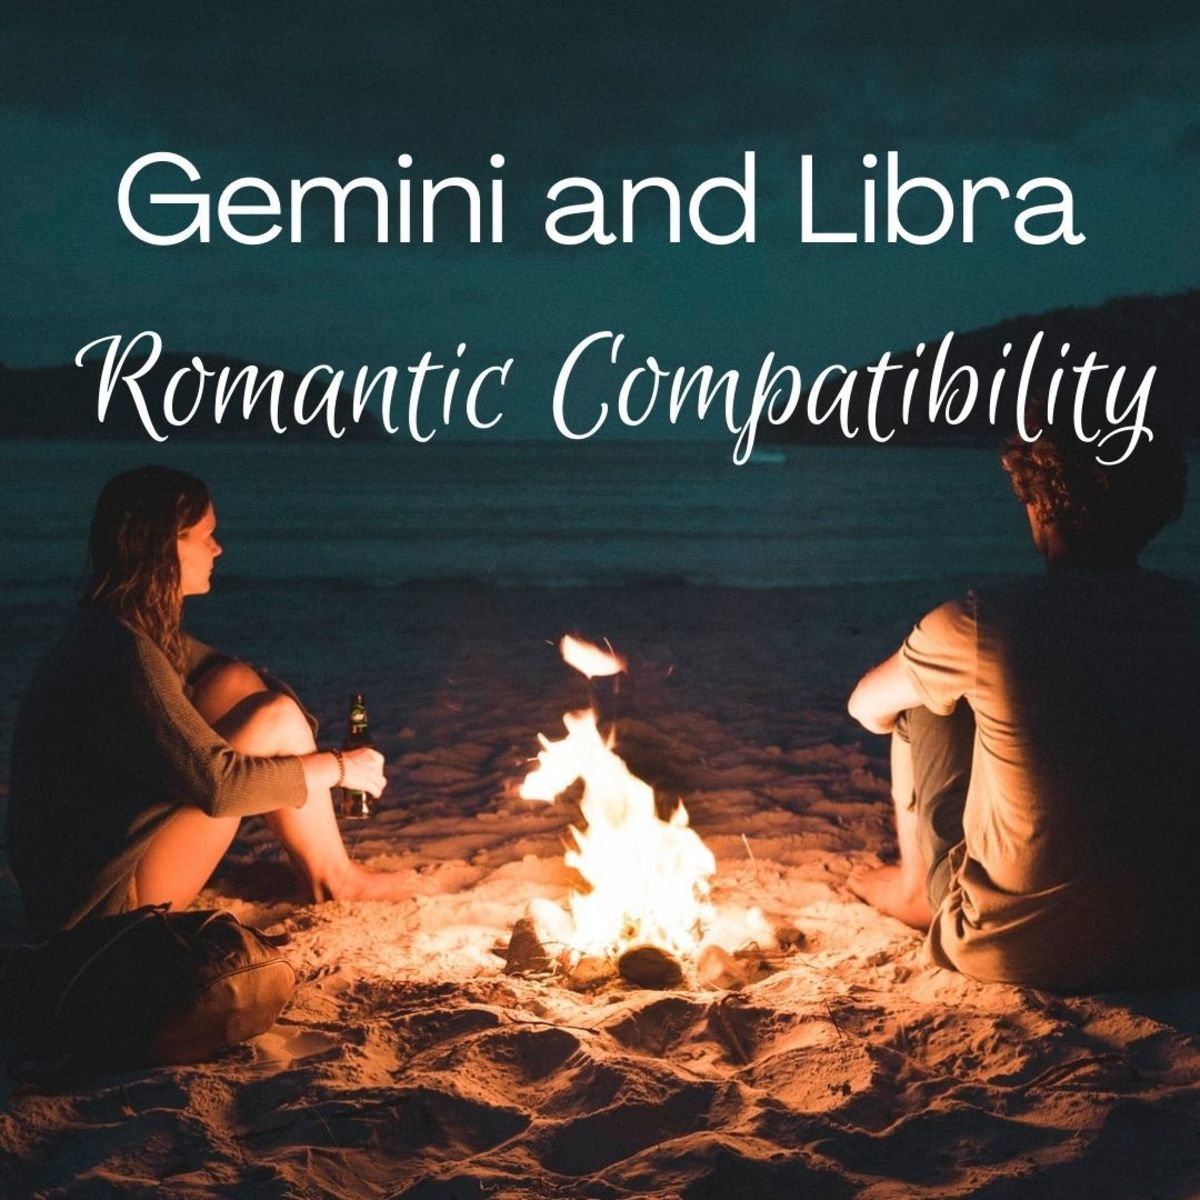 Gemini and Libra share an enlightening spark that helps keep their attraction and commitment to each other alive.